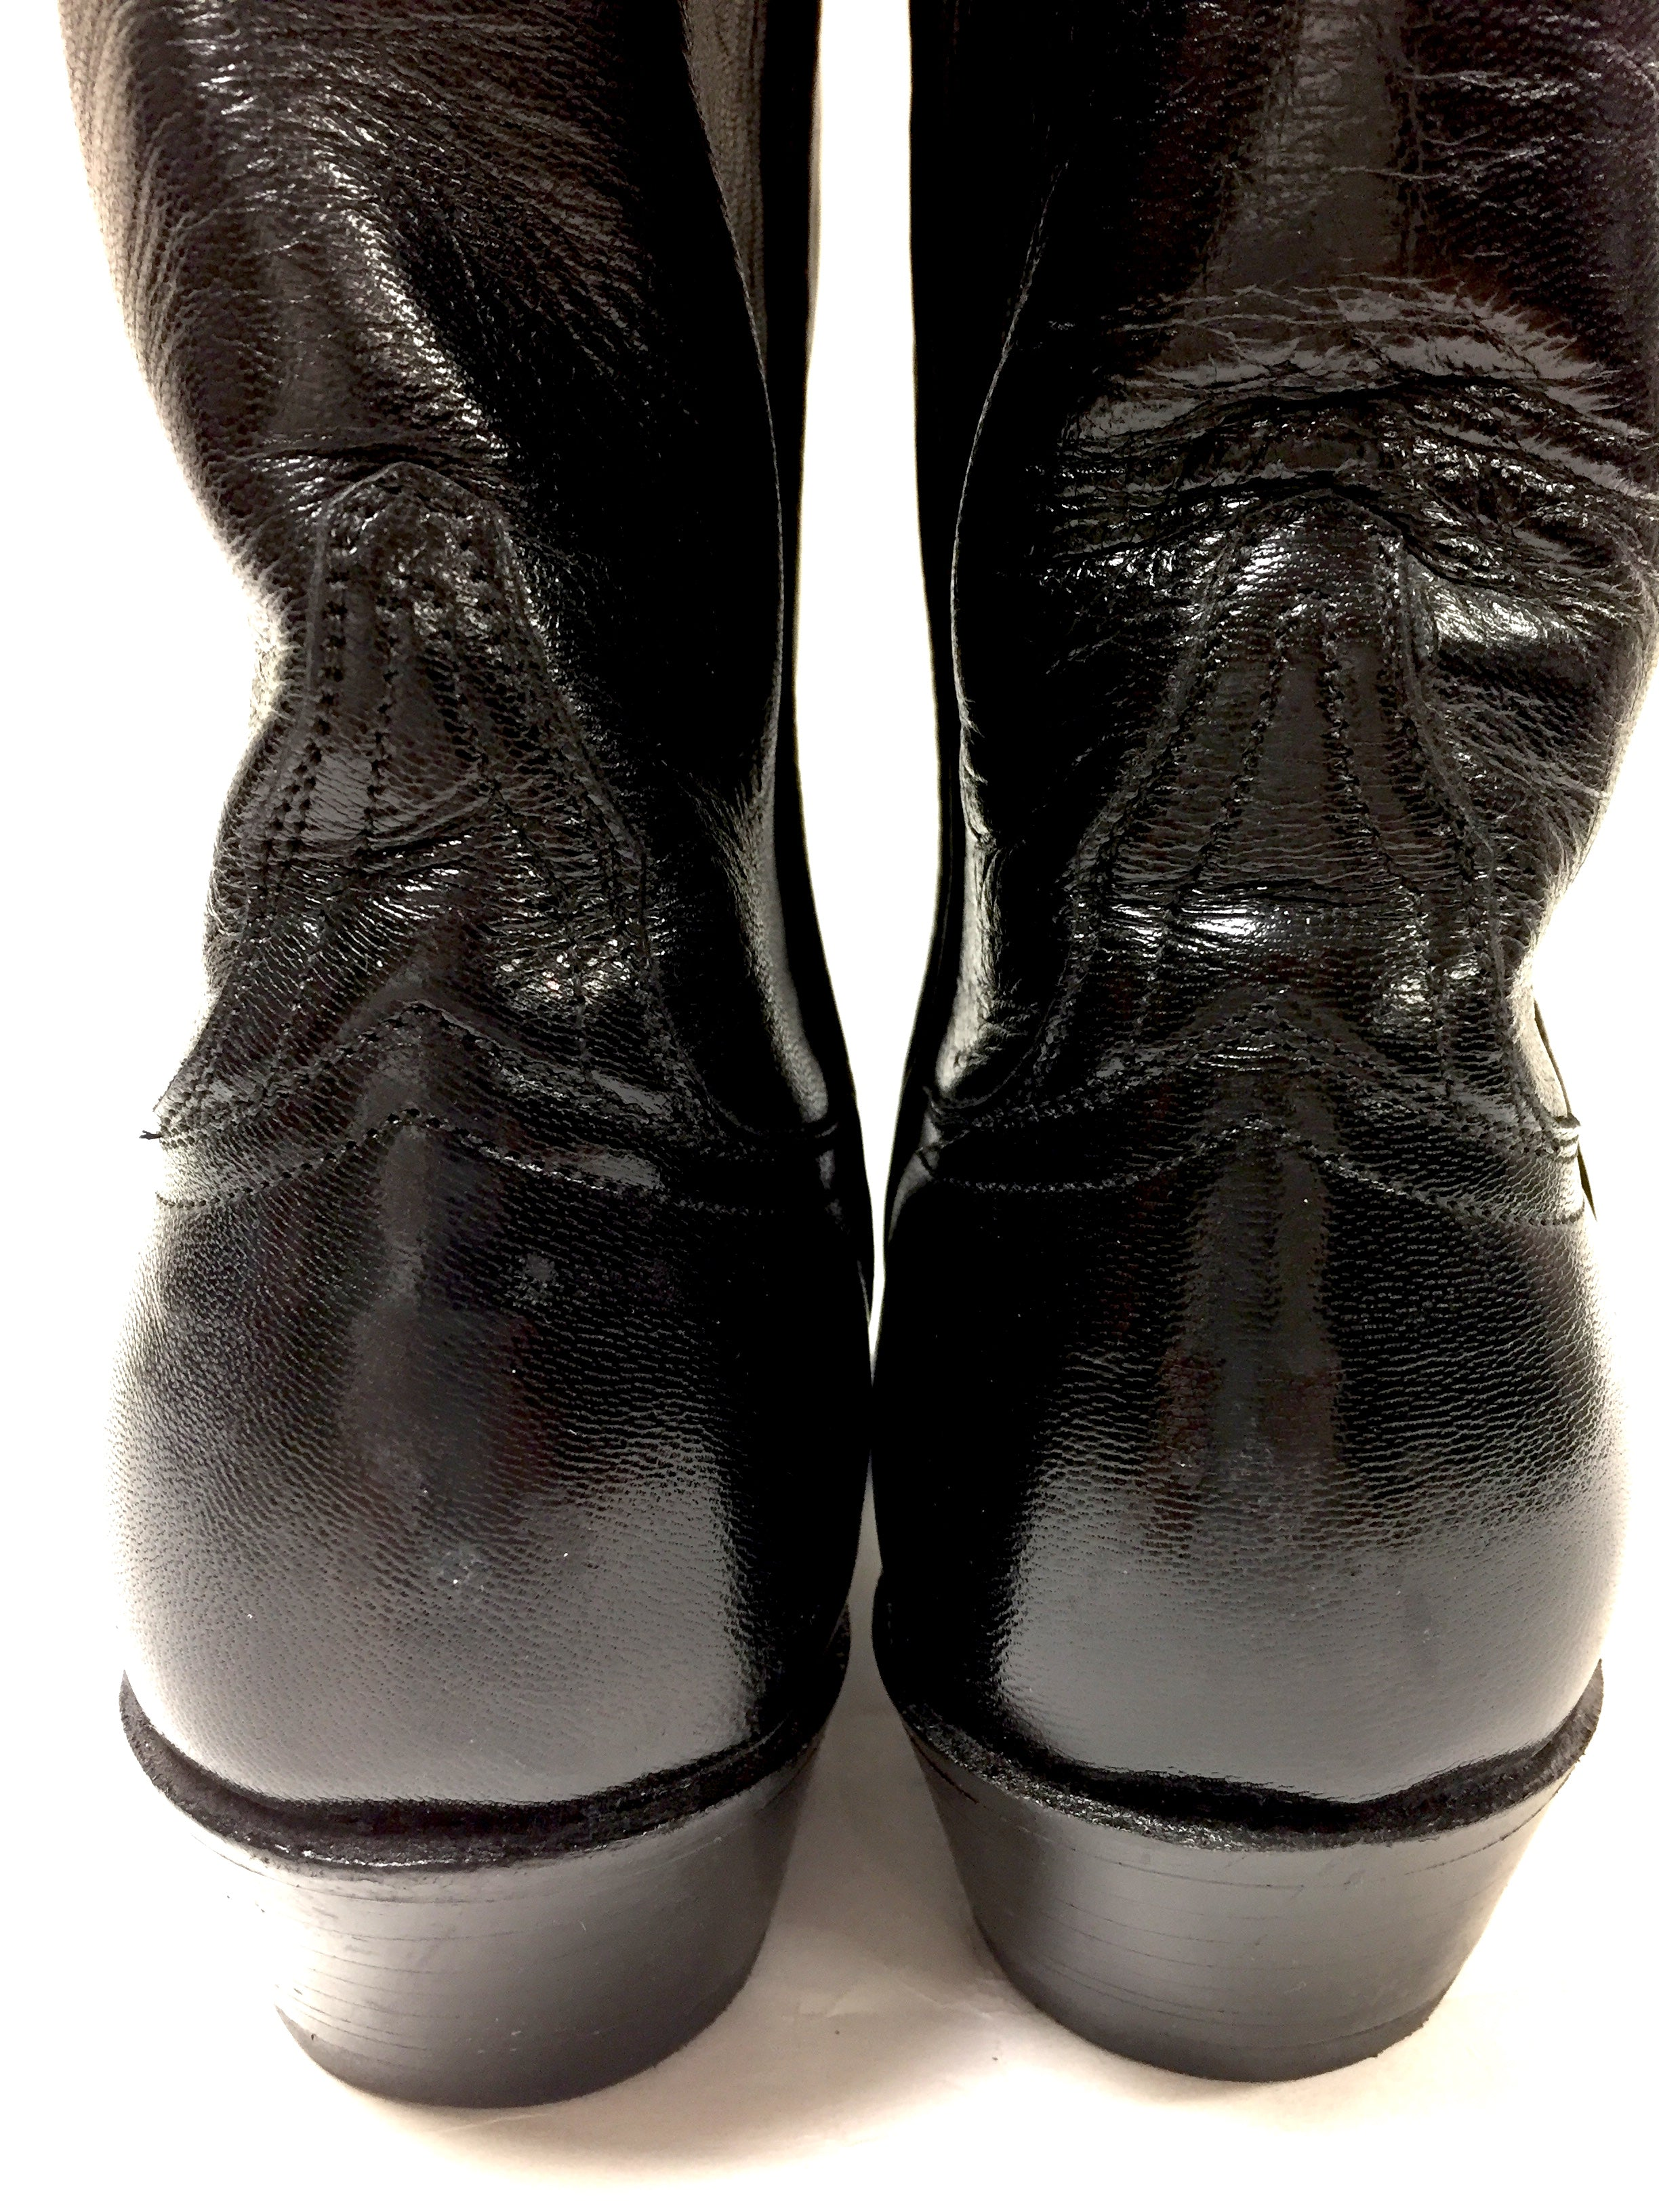 a35ce1cc8d3 LUCCHESE Black Leather Embroidered Cuff Tall Women Cowboy Pull-On Boots  Size: 8